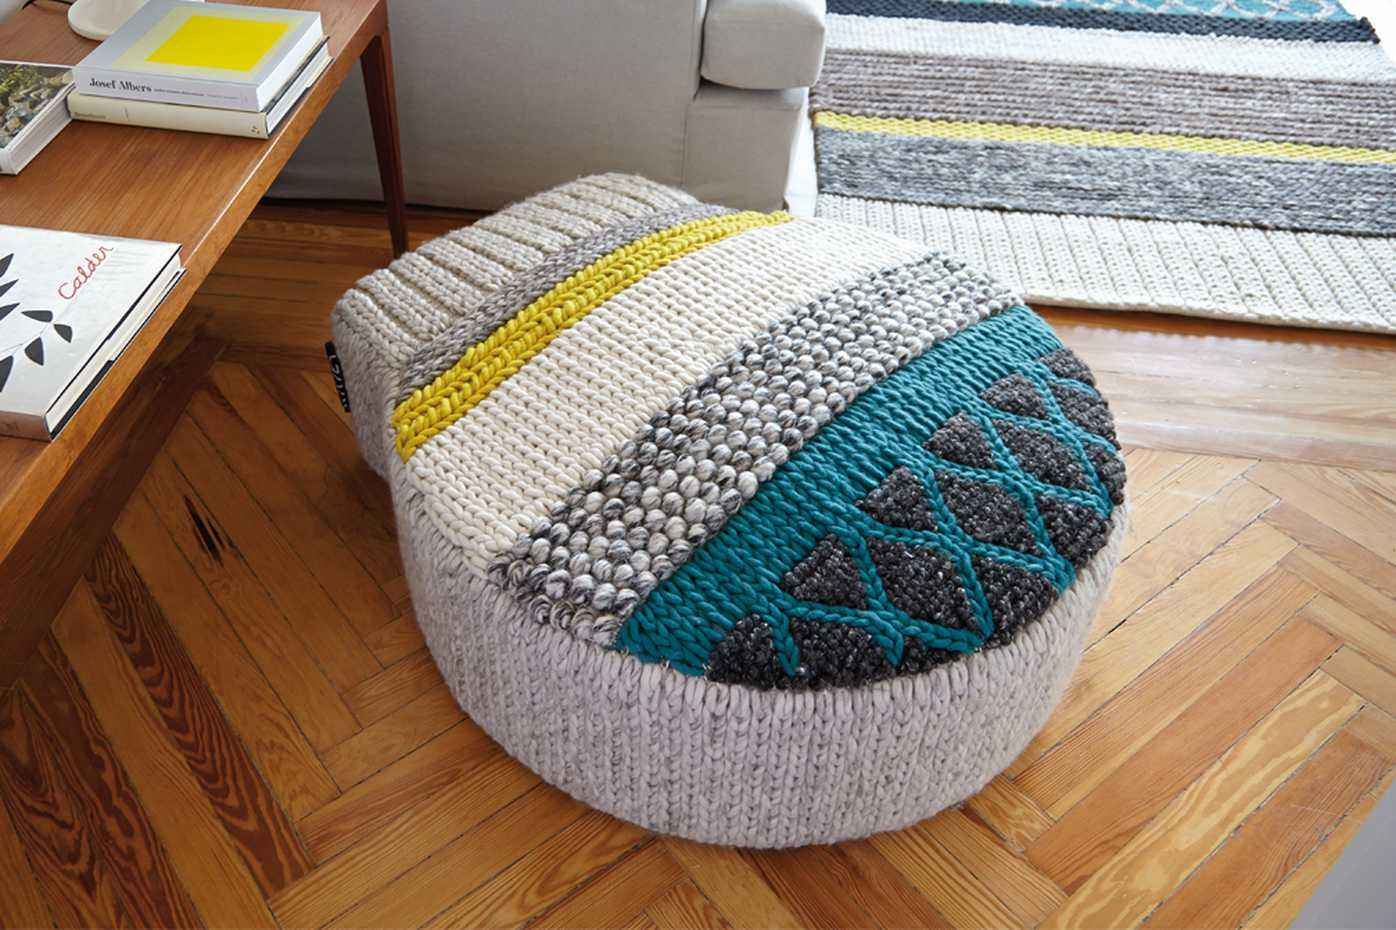 Mangas Original Poufs by Gan Rugs product image 5